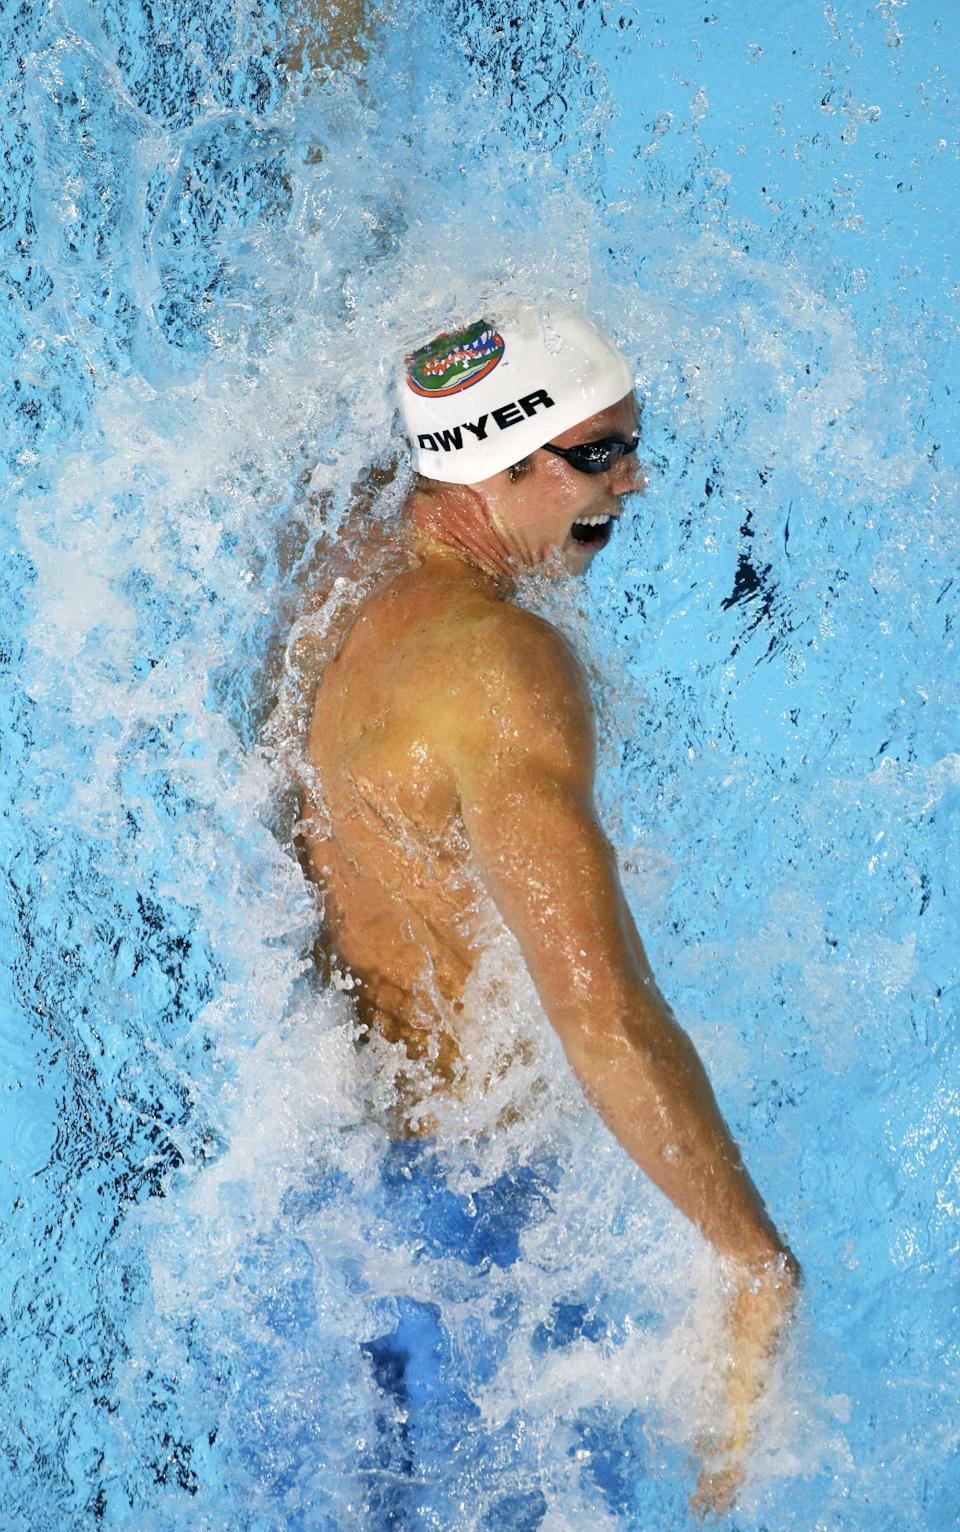 Conor Dwyer swims in the men's 200-meter freestyle preliminaries at the U.S. Olympic swimming trials, Tuesday, June 26, 2012, in Omaha, Neb. (AP Photo/Mark Humphrey)